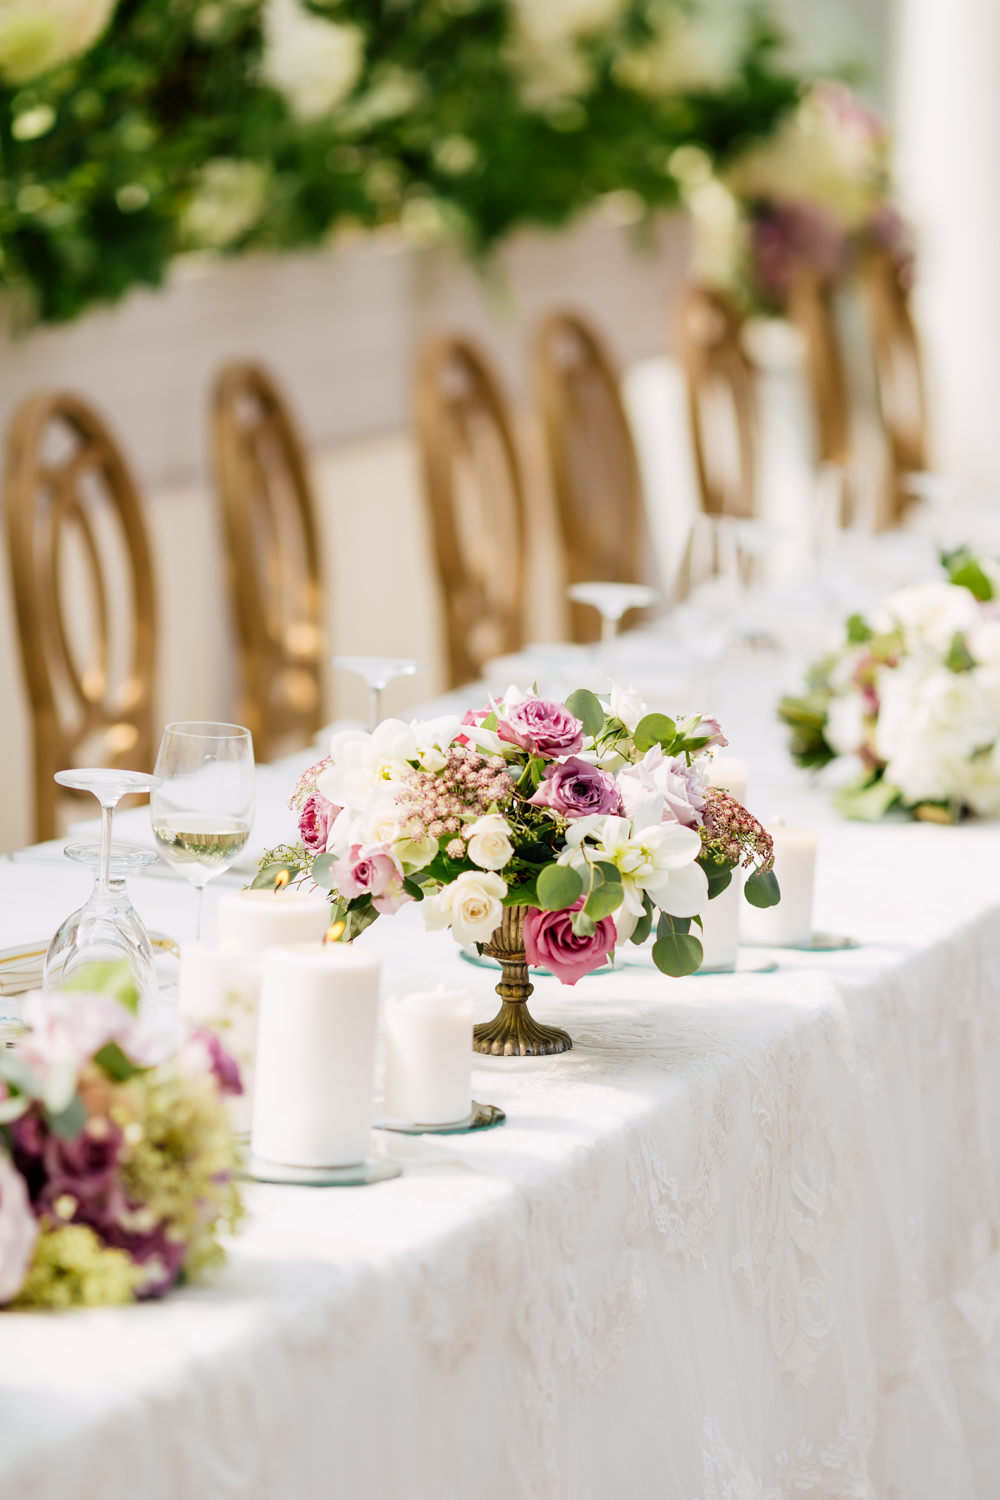 Simply Beautiful Events Decor Inc.